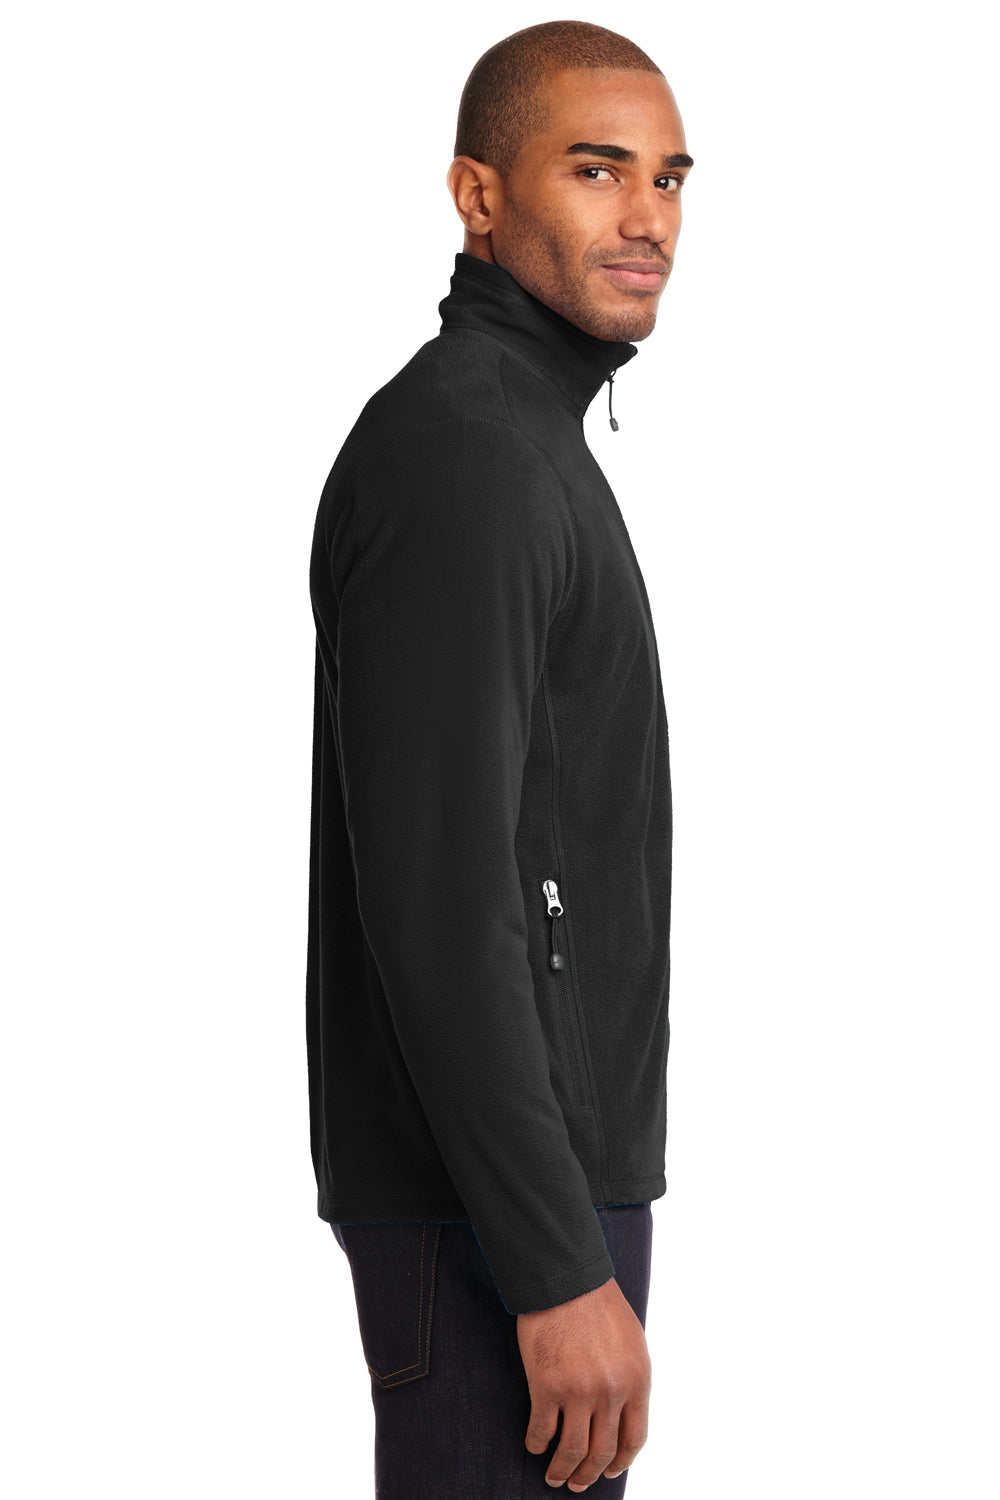 Eddie Bauer EB224 Mens Full Zip Microfleece Jacket Black Side